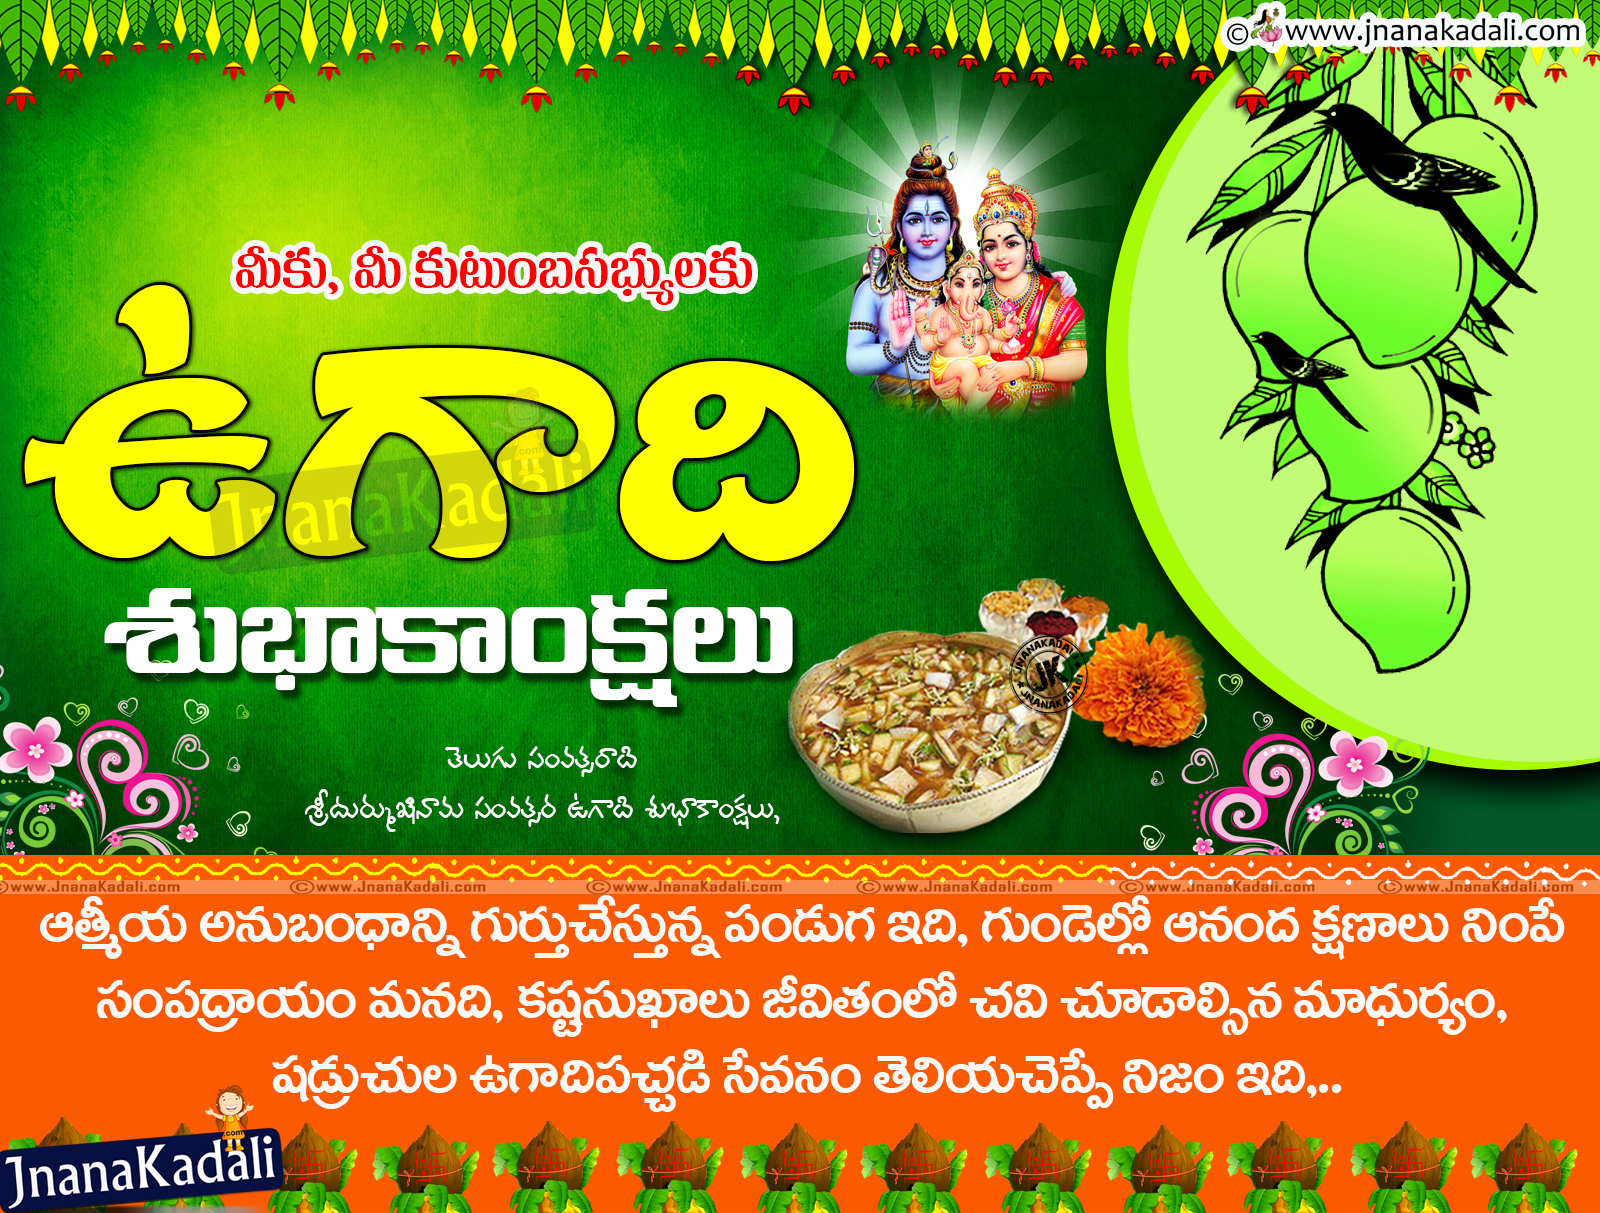 Beautiful ugadi quotations and messages free in telugu language beautiful ugadi quotations and messages free in telugu language m4hsunfo